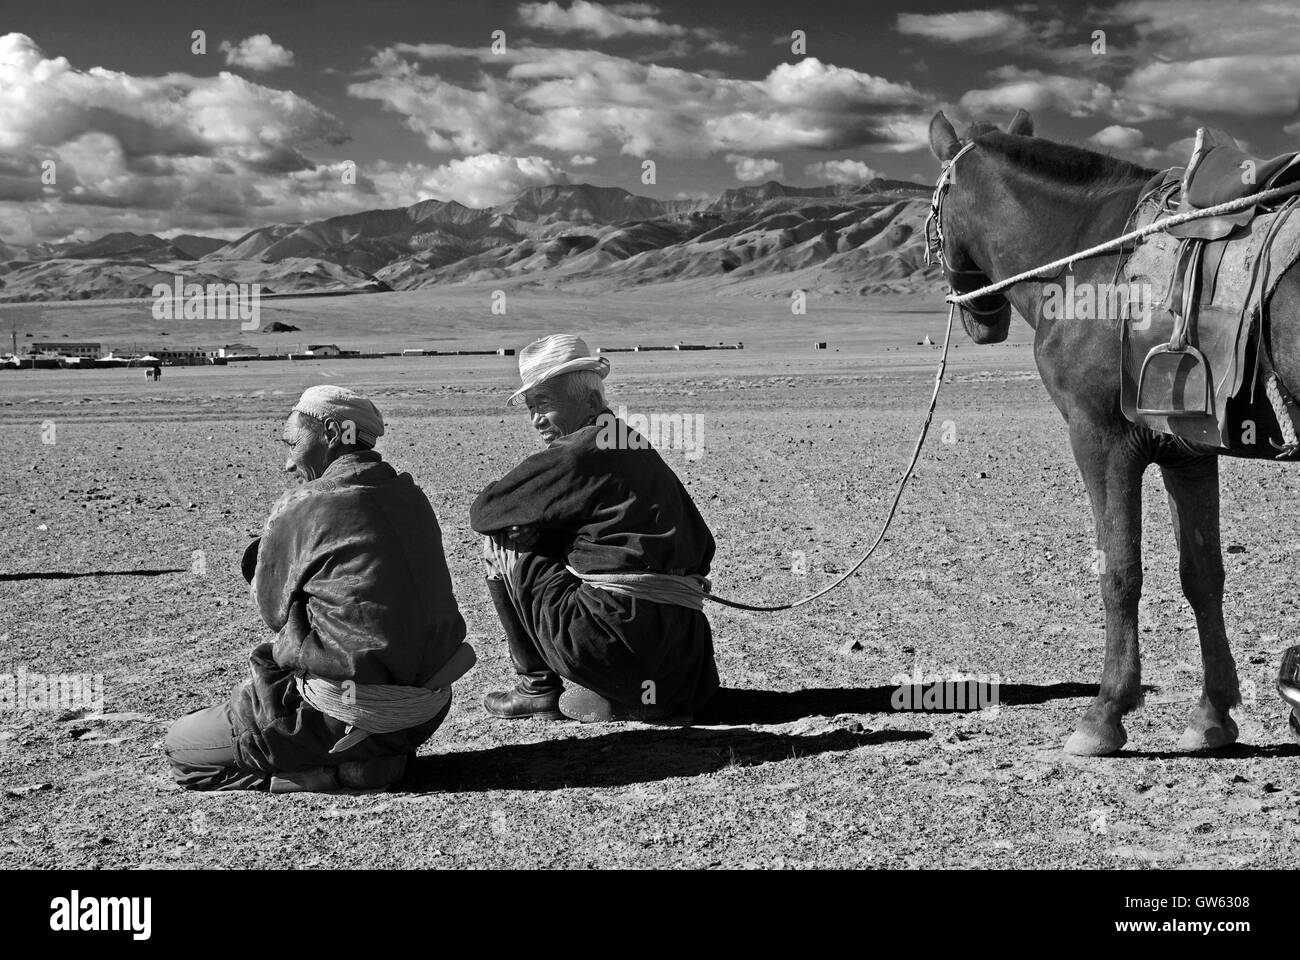 Annual Festival Black And White Stock Photos Images Alamy Kc 6308 Wiring Harness Two Men Wating The Starting Of Race Horses In Their Village Altai Mountain Area